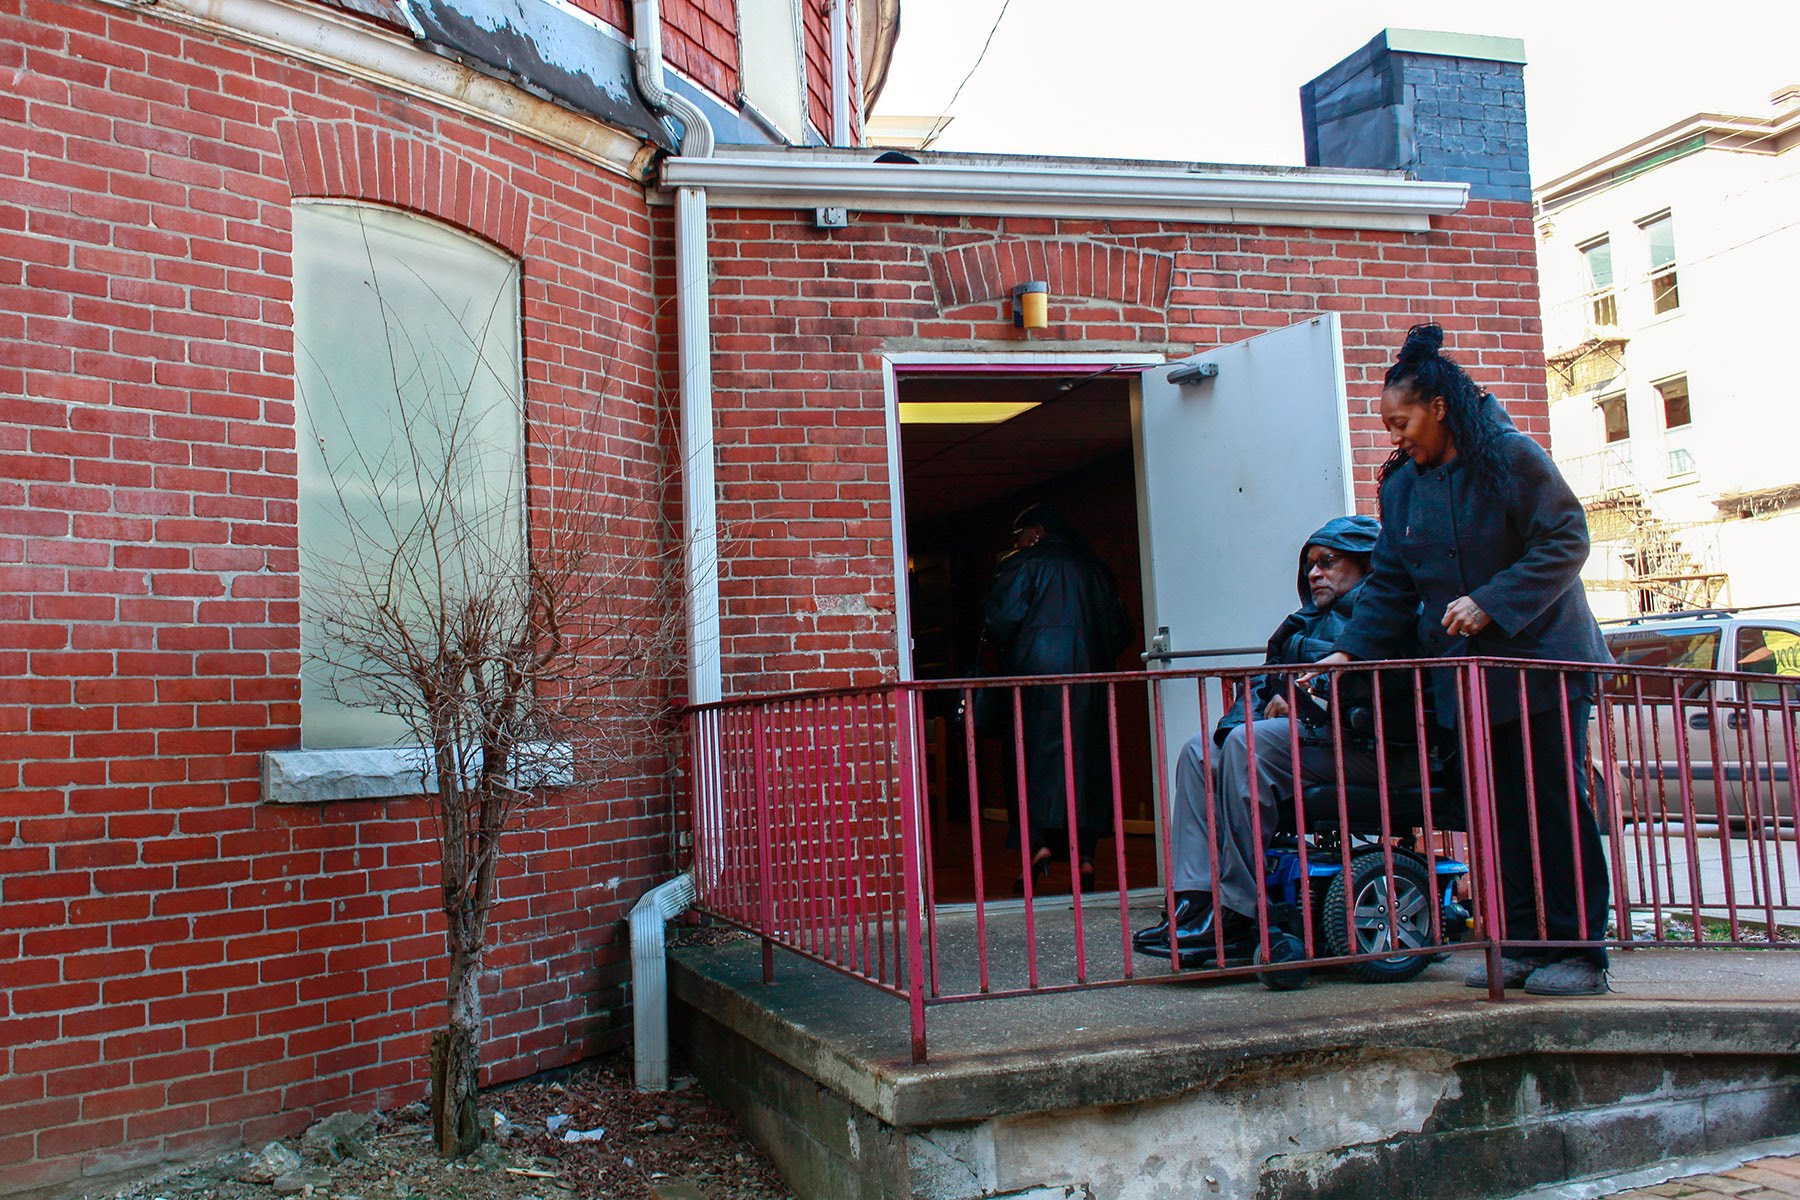 Photograph of an older Black man in motorized wheelchair going up a ramp into the back of a church. A younger Black woman walks beside him, helping him inside.